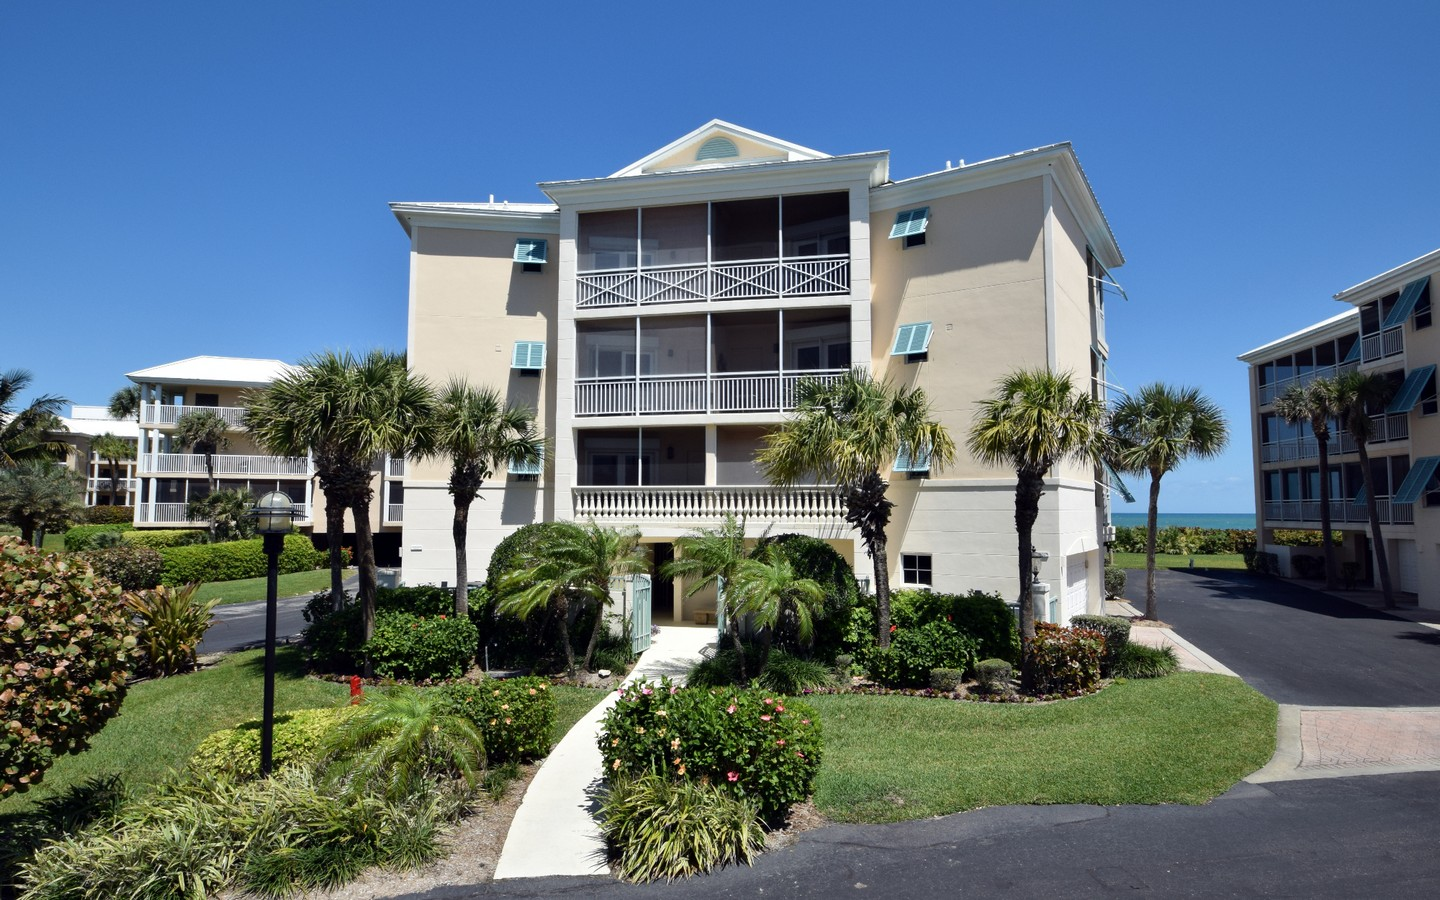 Condominium for Sale at Stunning Oceanfront Condo in Sea Oaks 8824 S Sea Oaks Way#105 Vero Beach, Florida, 32963 United States